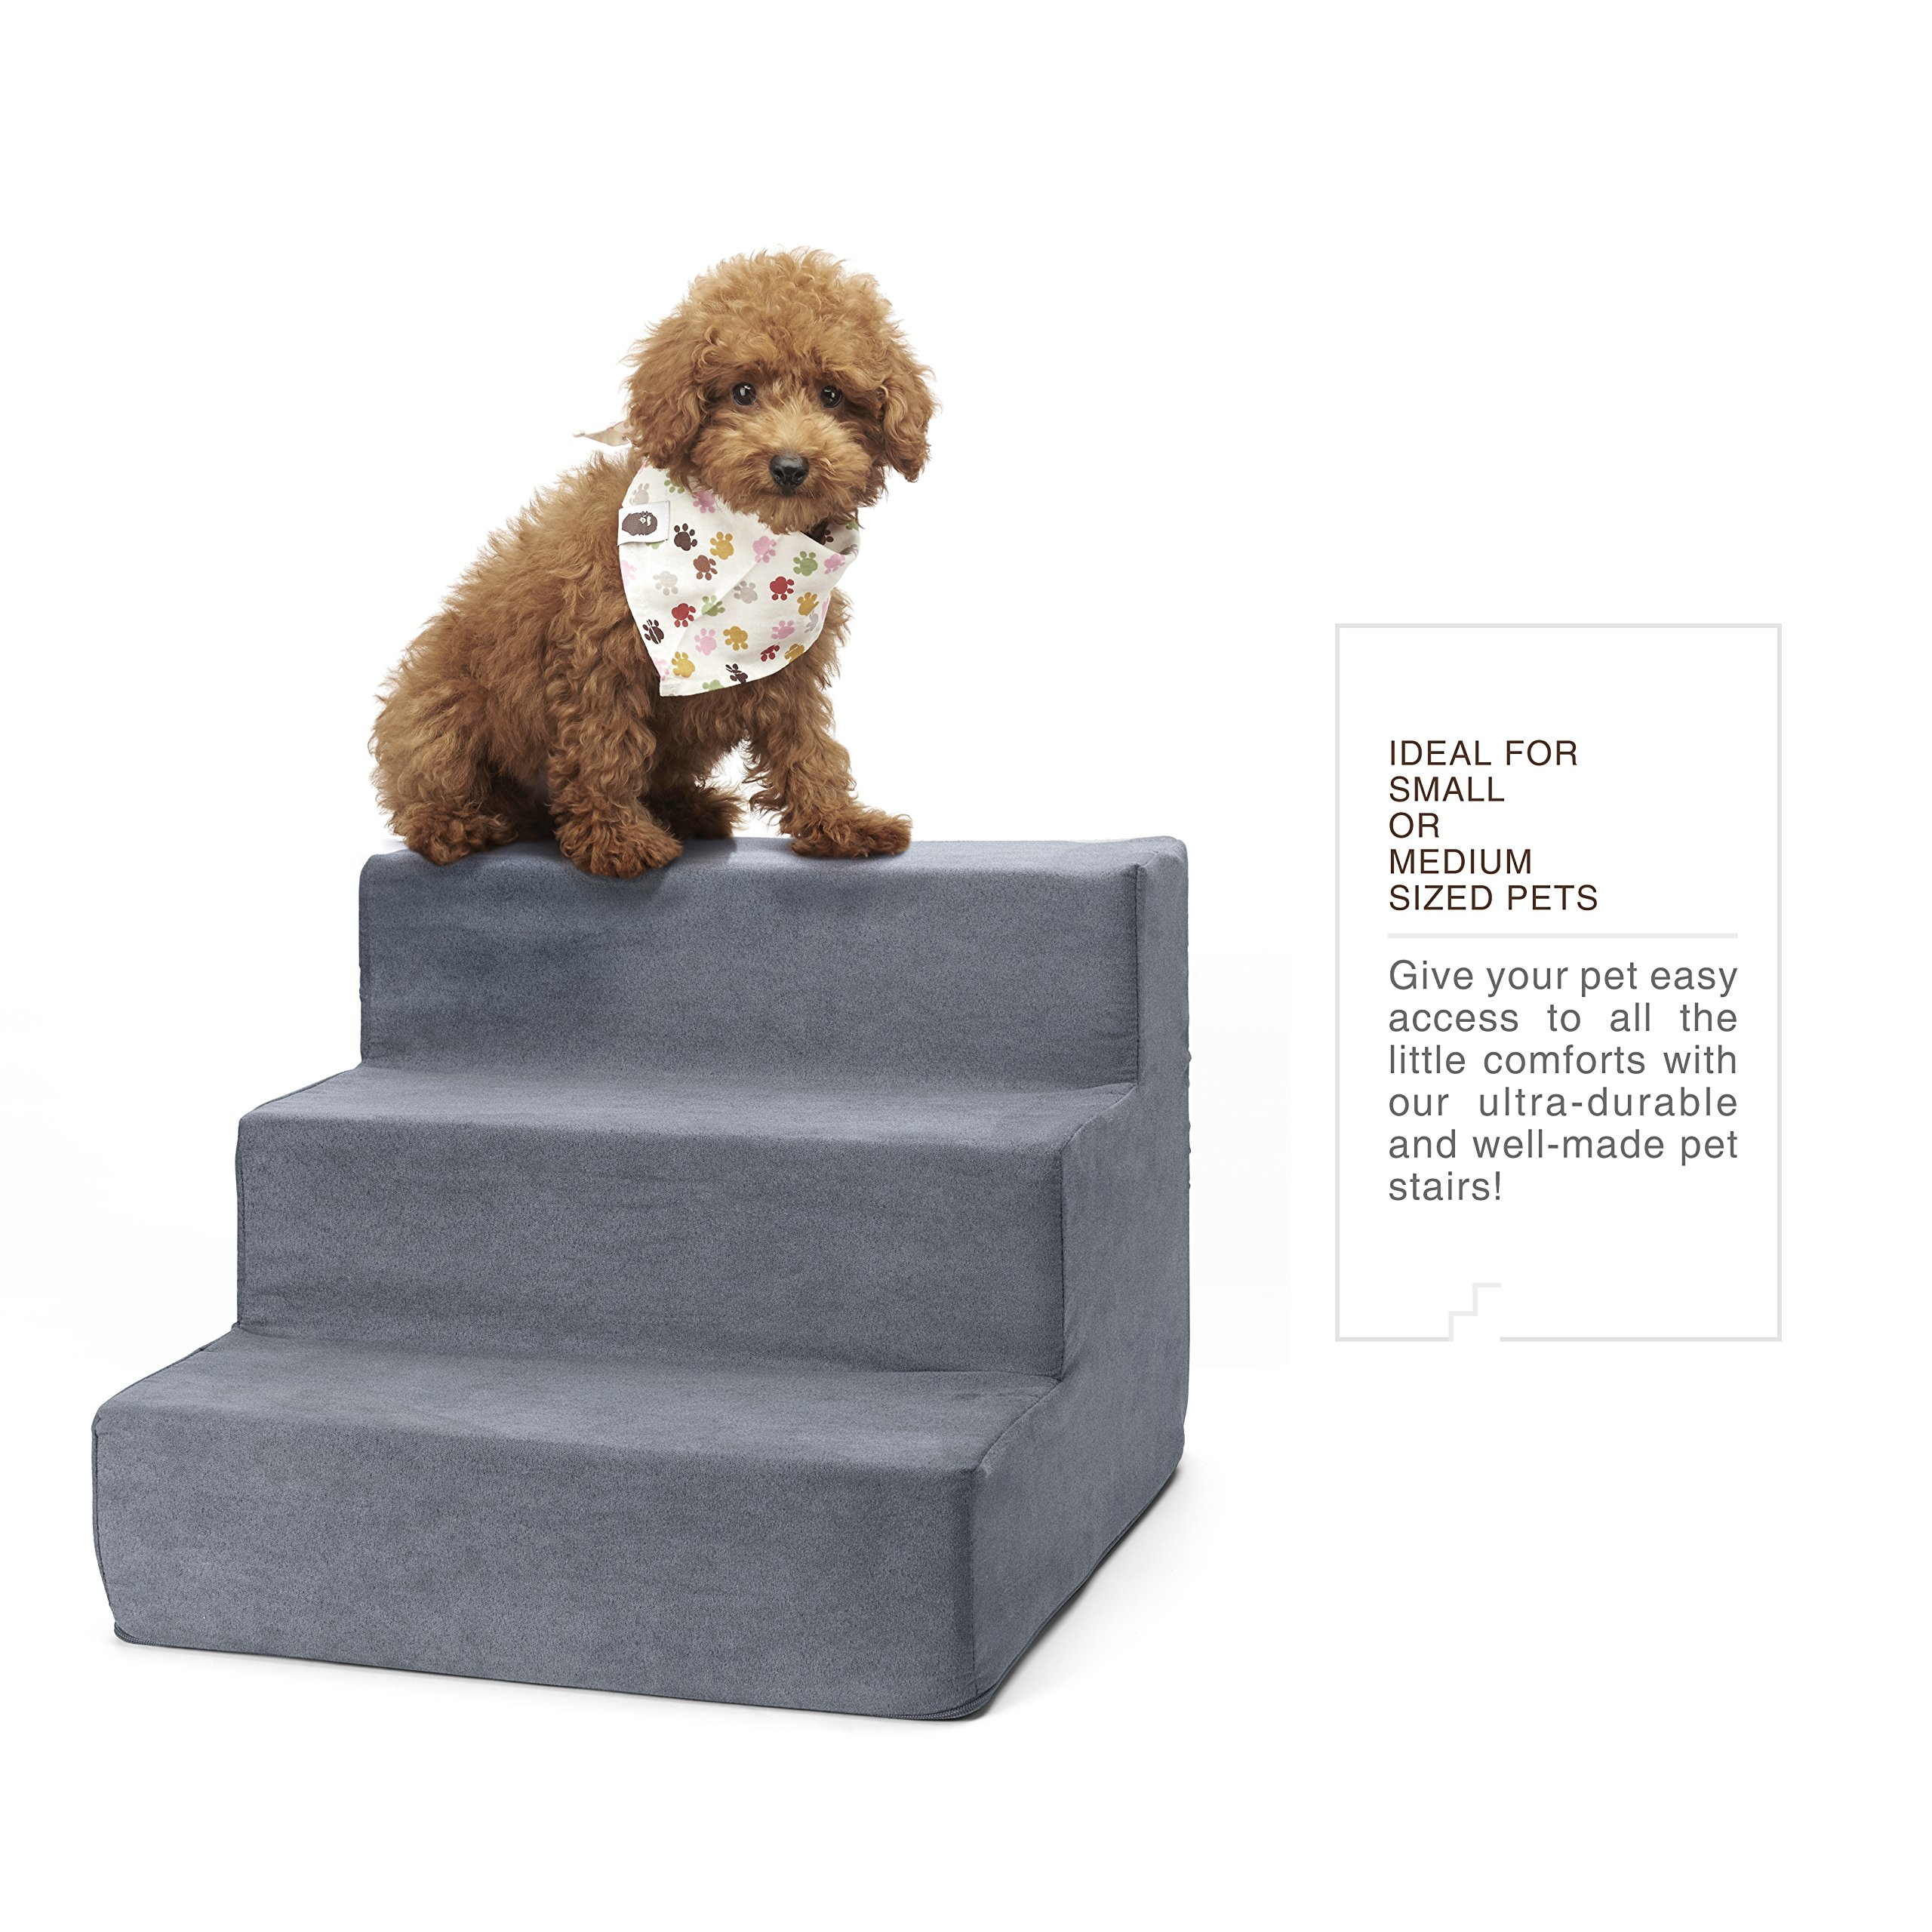 Delxo High Density Foam 3 Tier Pet Stairs,Comfy Micro Suede Pet Steps with Machine Washable Zippered Removable Cover with Anti-Slip Black Dot Bottom Loads 44lbs Gray(3-Step, Gray)